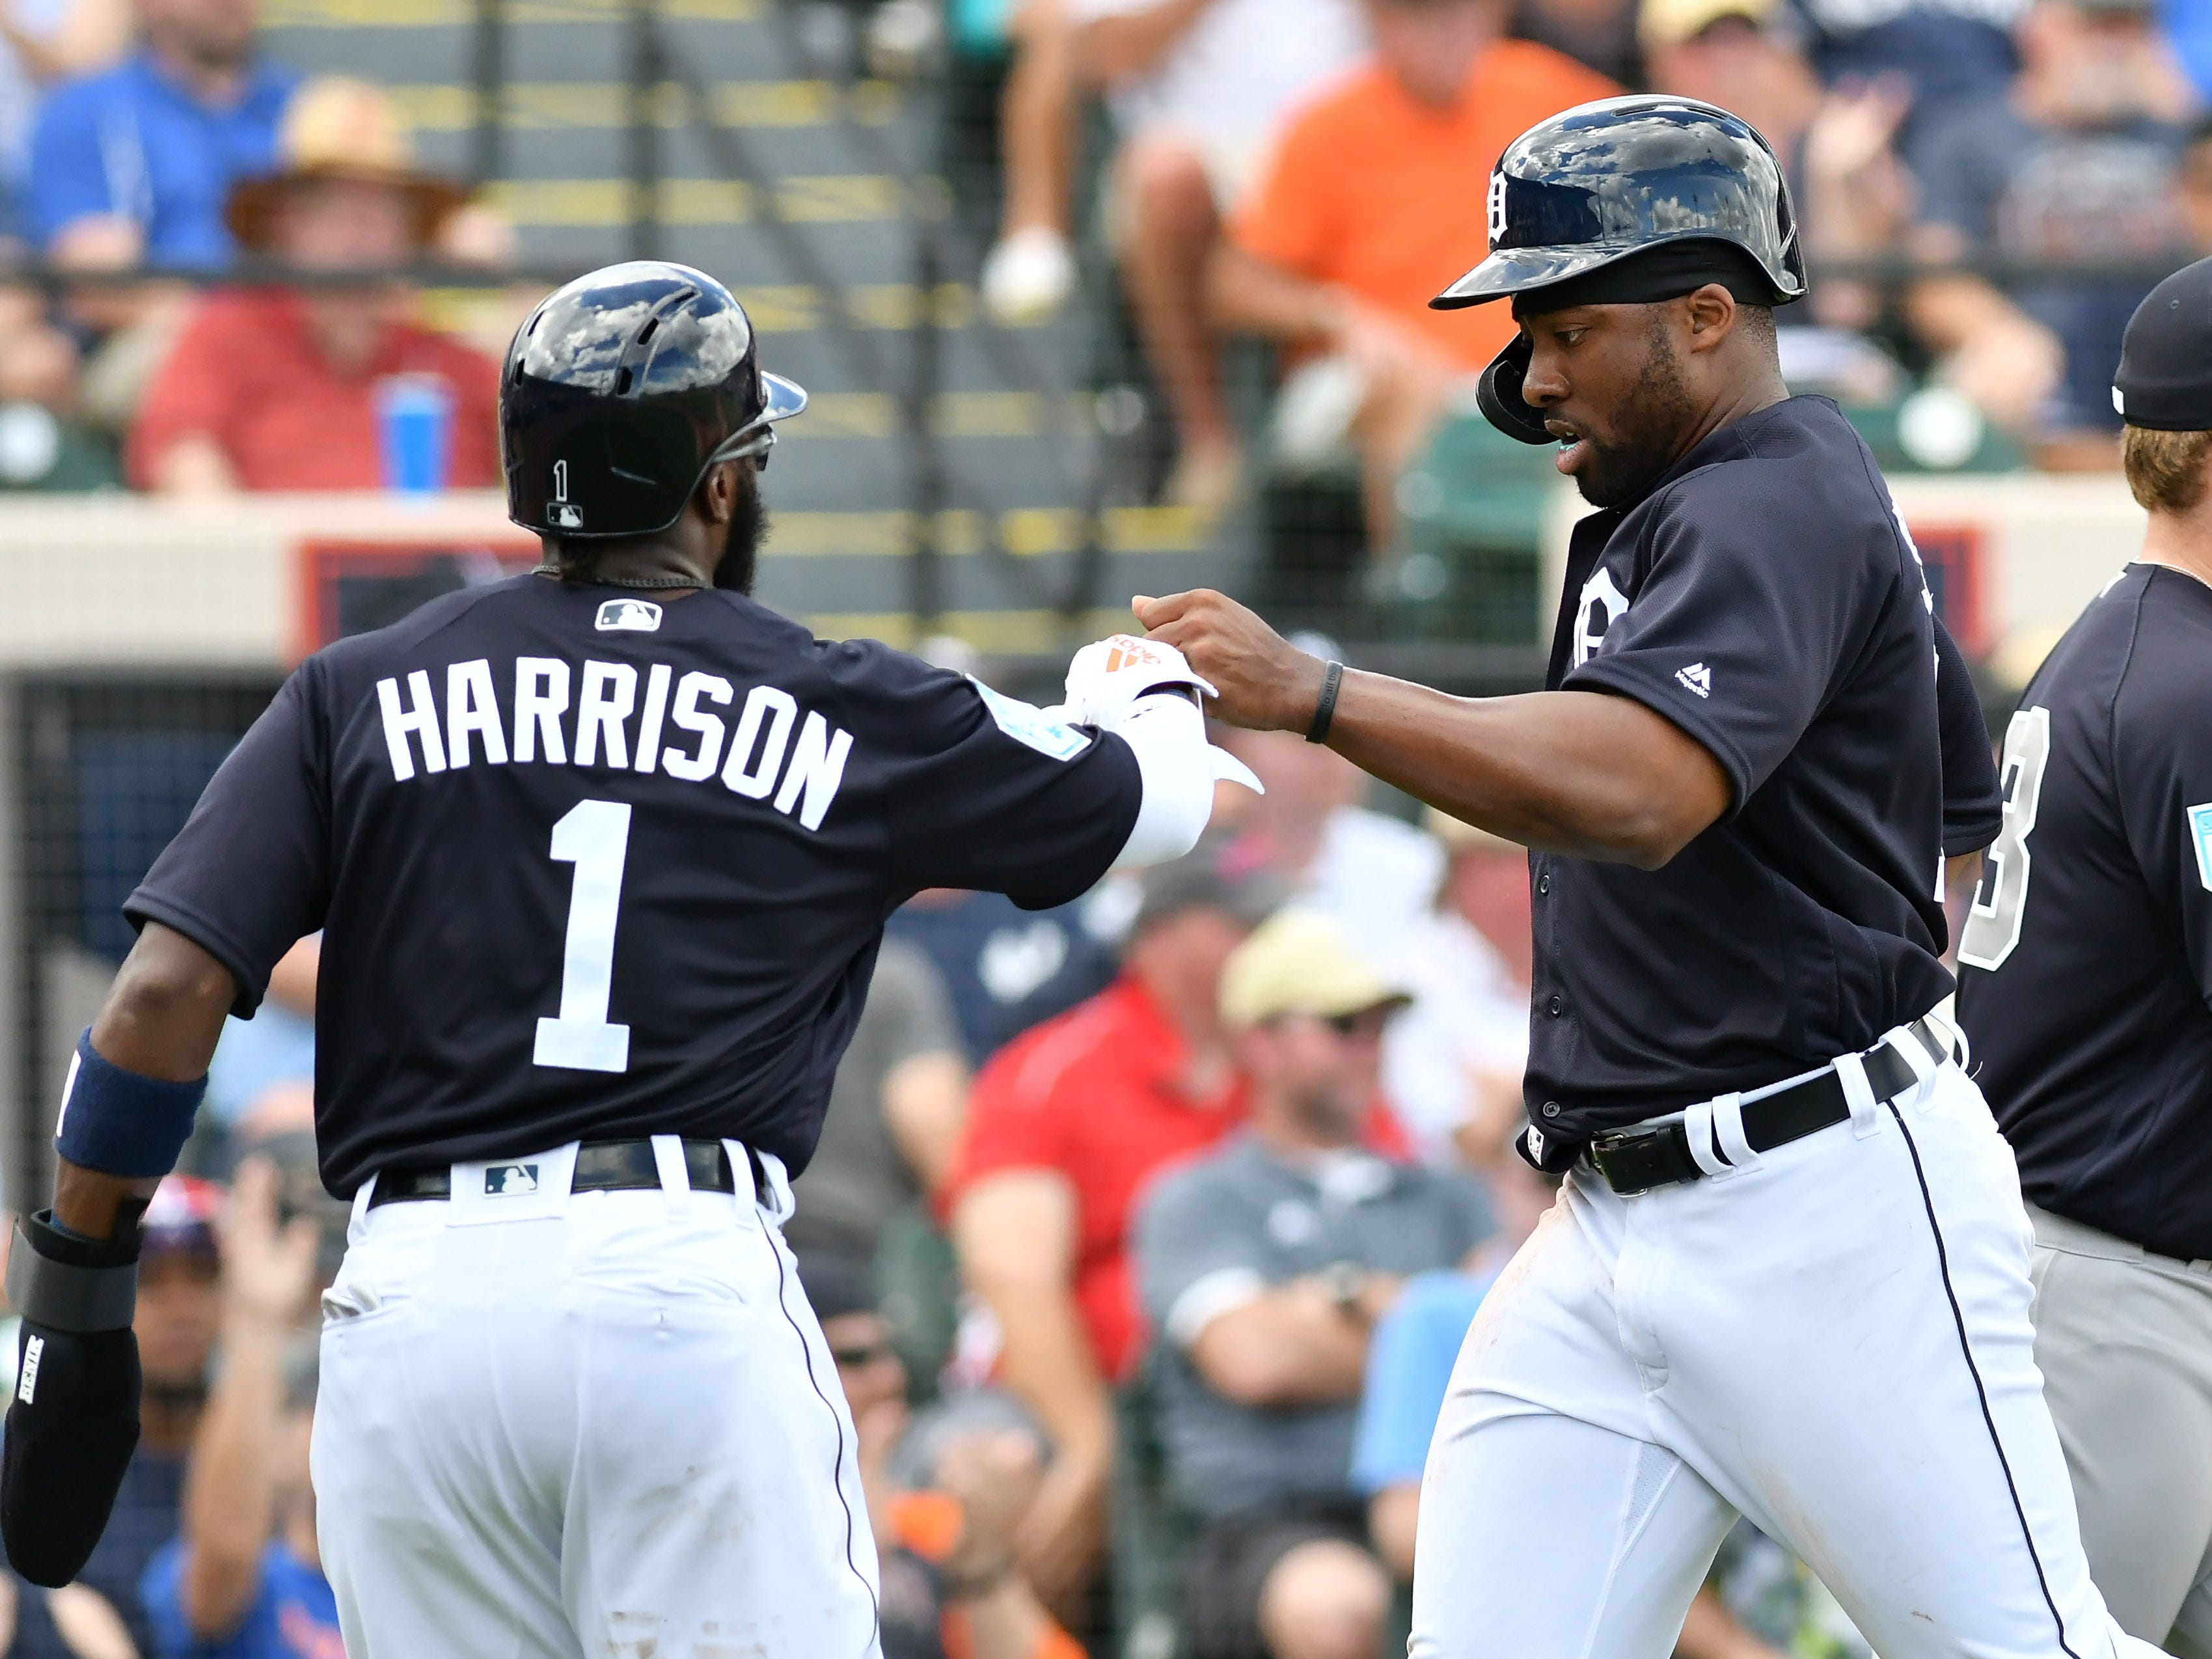 Tigers' Josh Harrison (1) and Christin Stewart after they score on a double by Nicholas Castellanos, not shown, in the first inning.